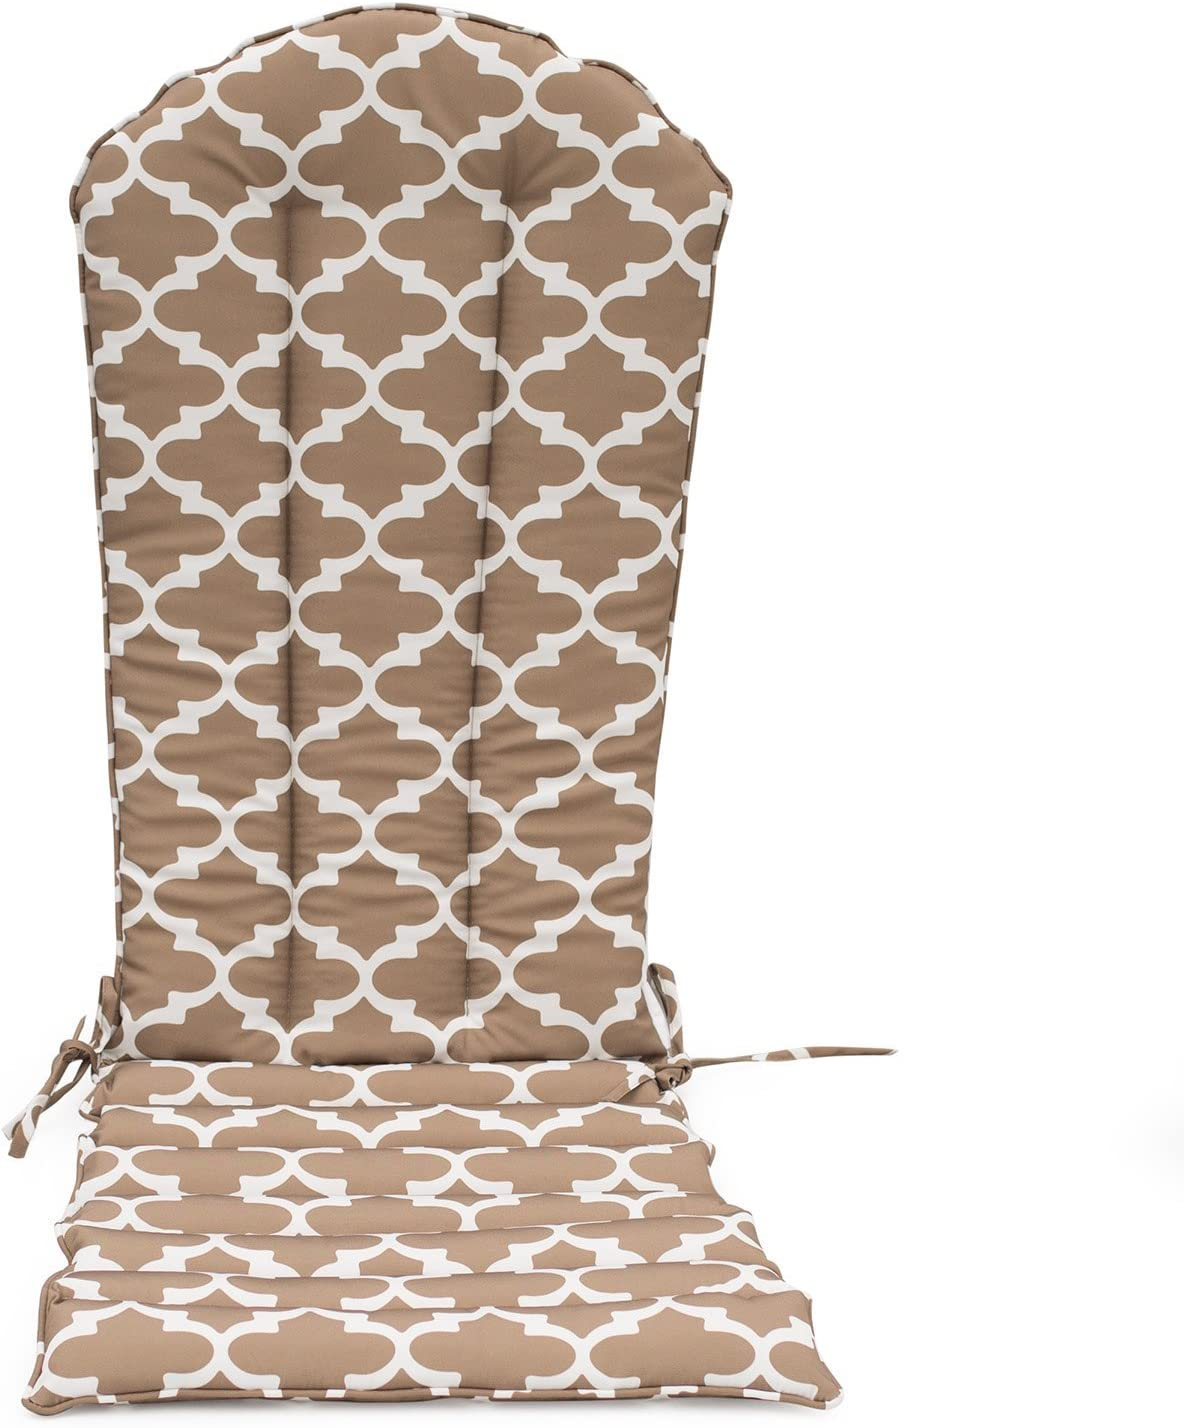 Home Improvements Neutral Taupe White Moroccan Trellis Outdoor Patio Adirondack Chair Cushion Seasonal Replacement Pad